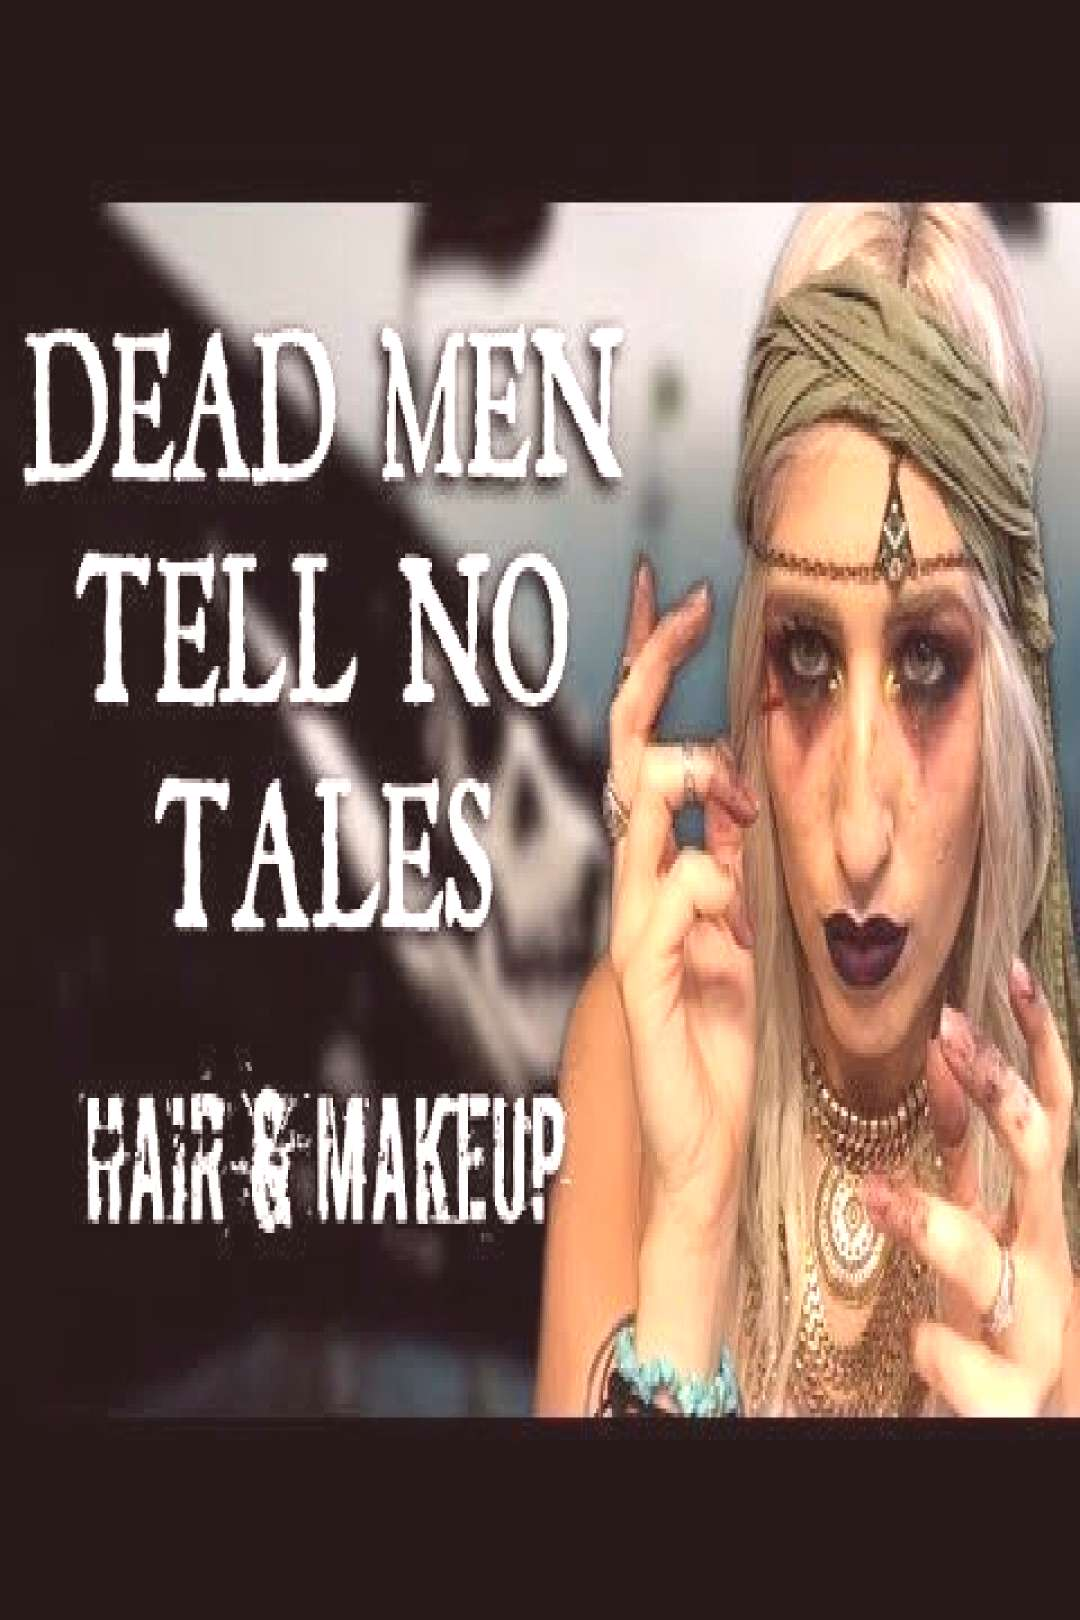 DEAD MEN TELL NO TALES Pirates of the Caribbean MAKEUP amp HAIR Tutorial amp Transformation - -